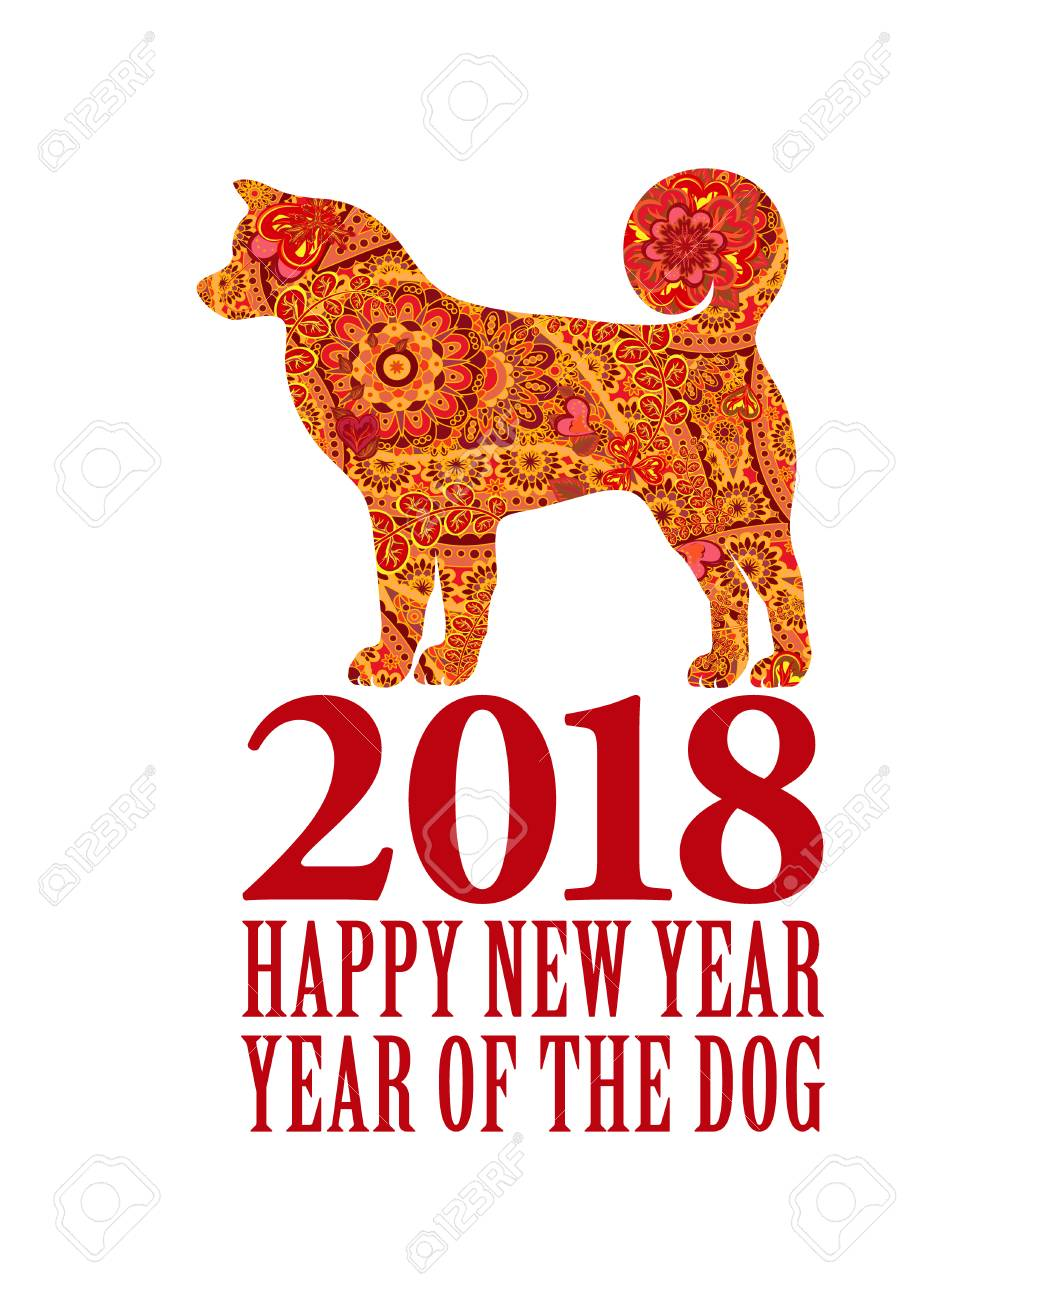 symbol of the 2018 chinese new year design for greeting cards calendars